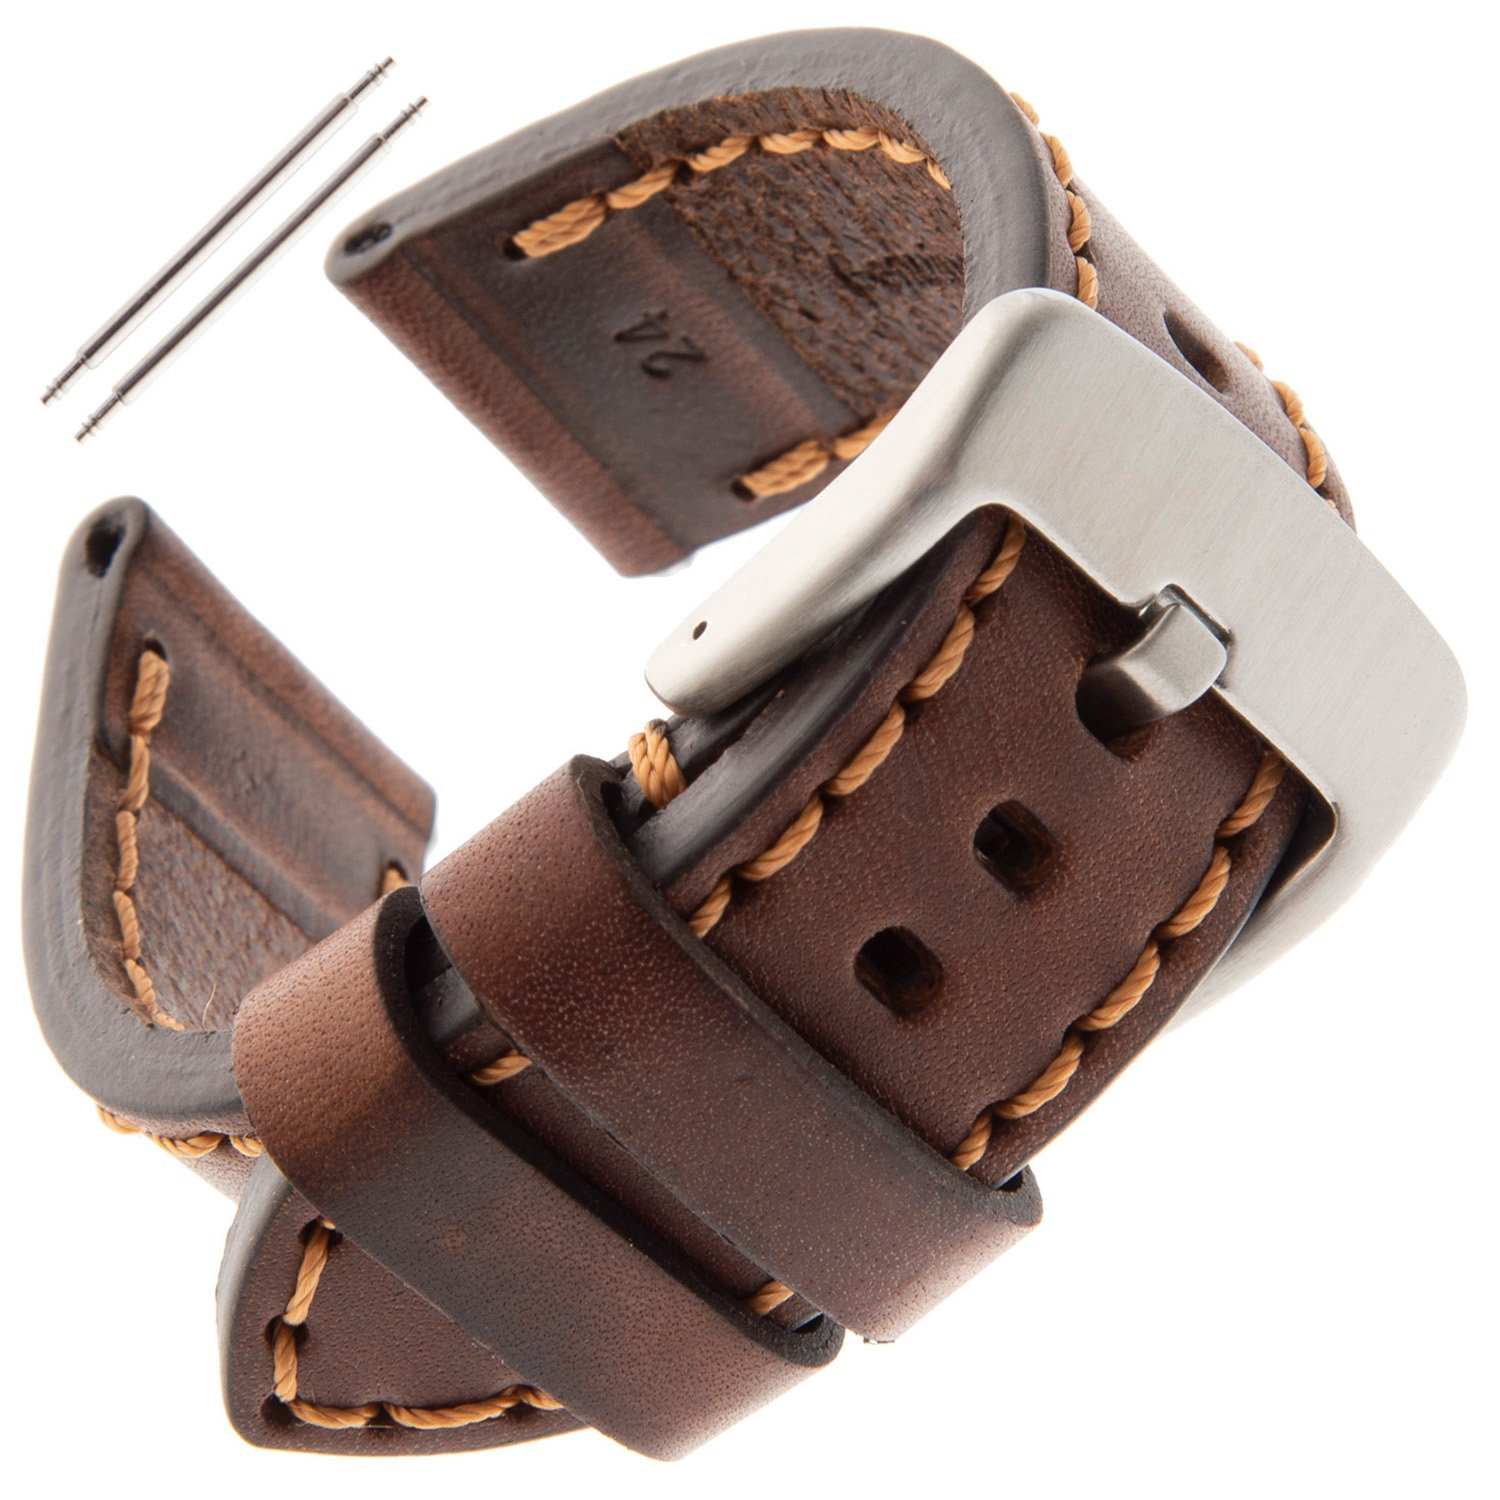 Gilden 22-26mm Gents Thick and Heavy Sport Calfskin Leather Watch Strap TS62-1522 (22 Millimeter end Width, Brown)